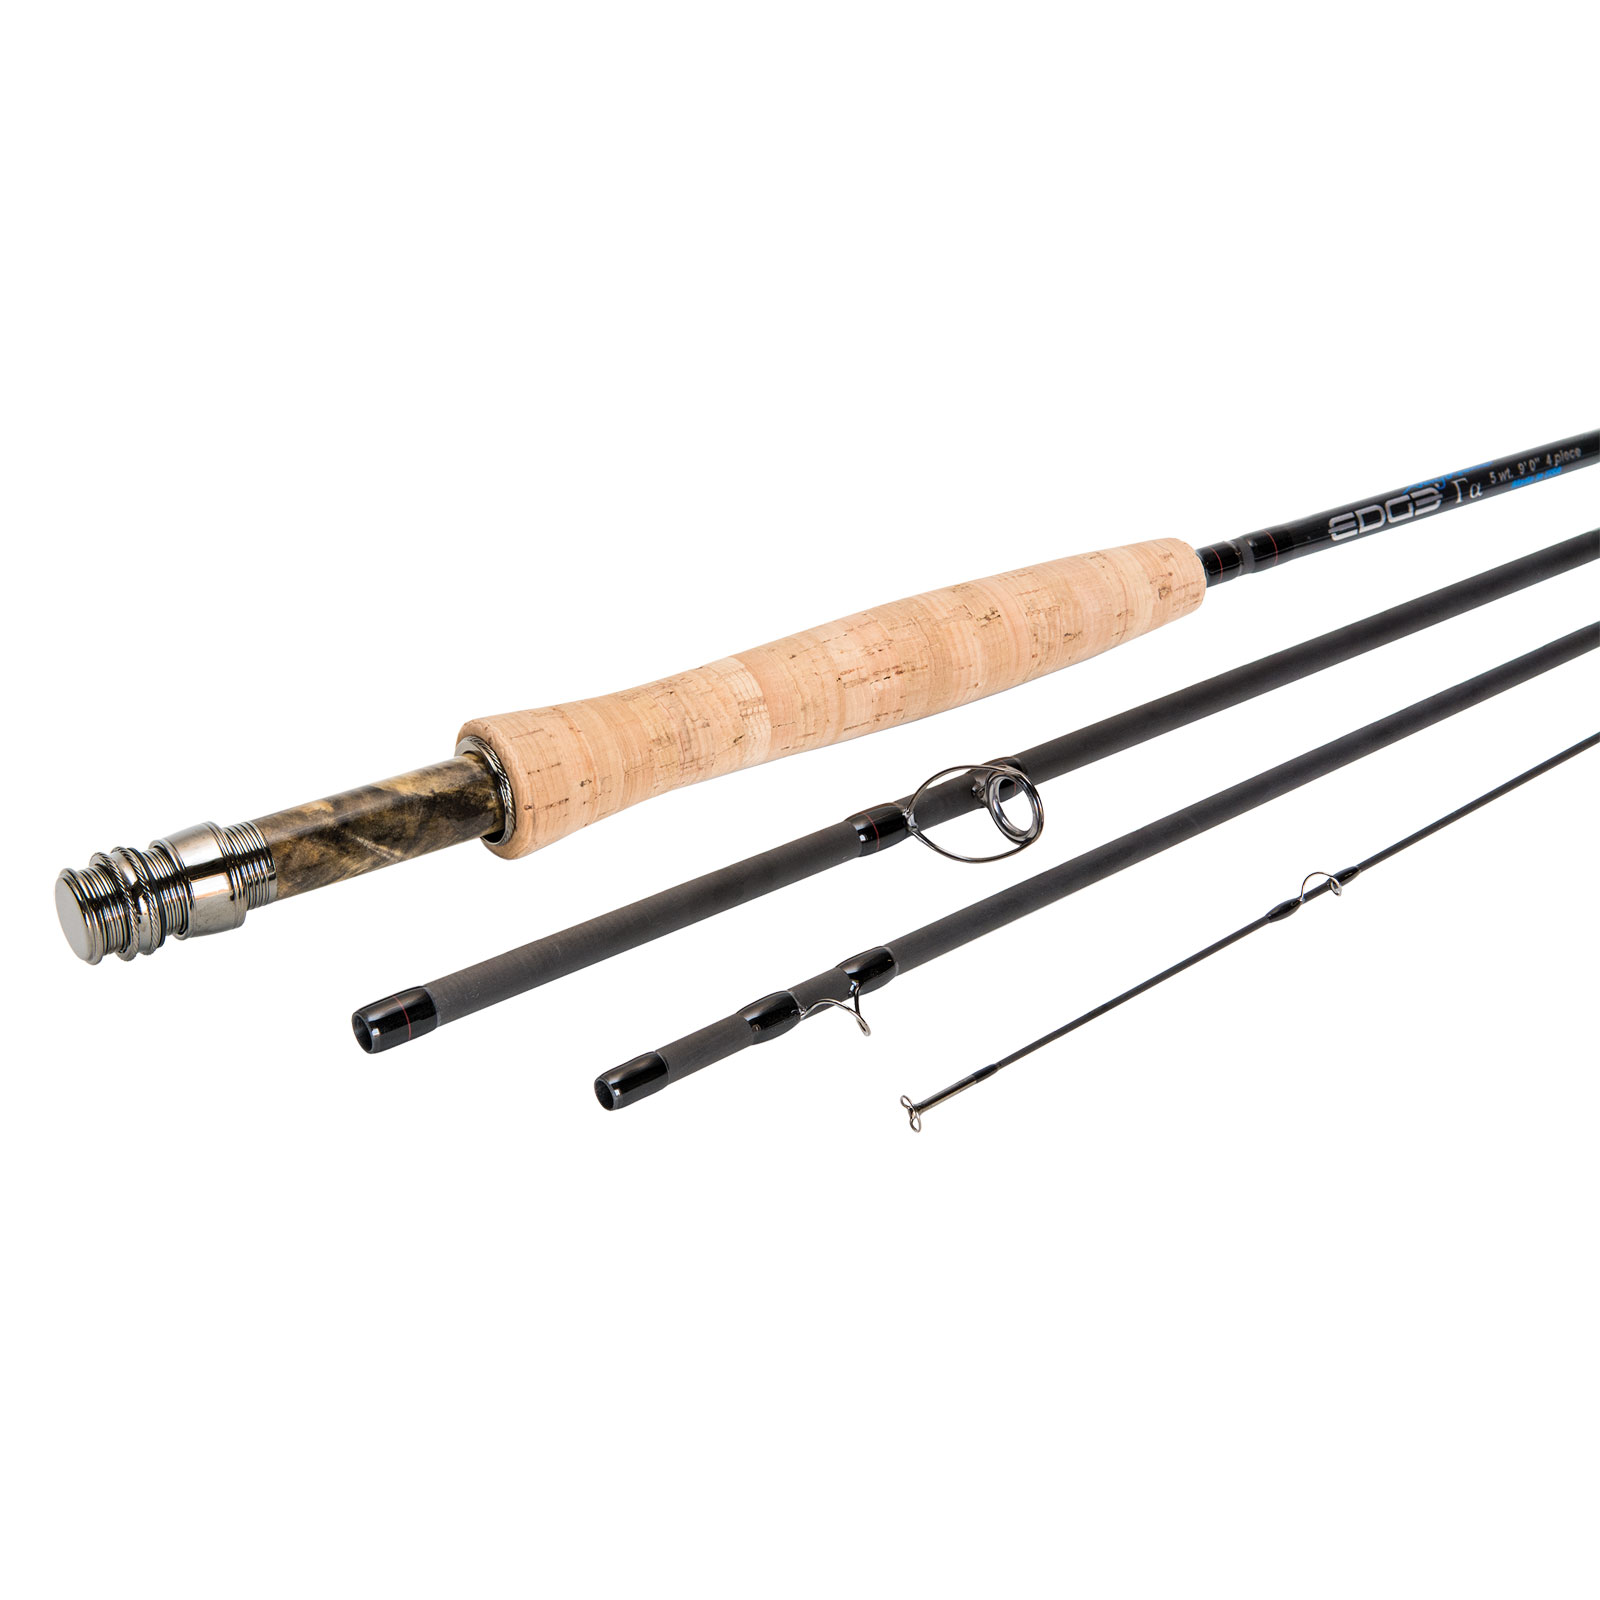 Edge gamma alpha moderate action fly fishing rods by gary for Edge fishing rods